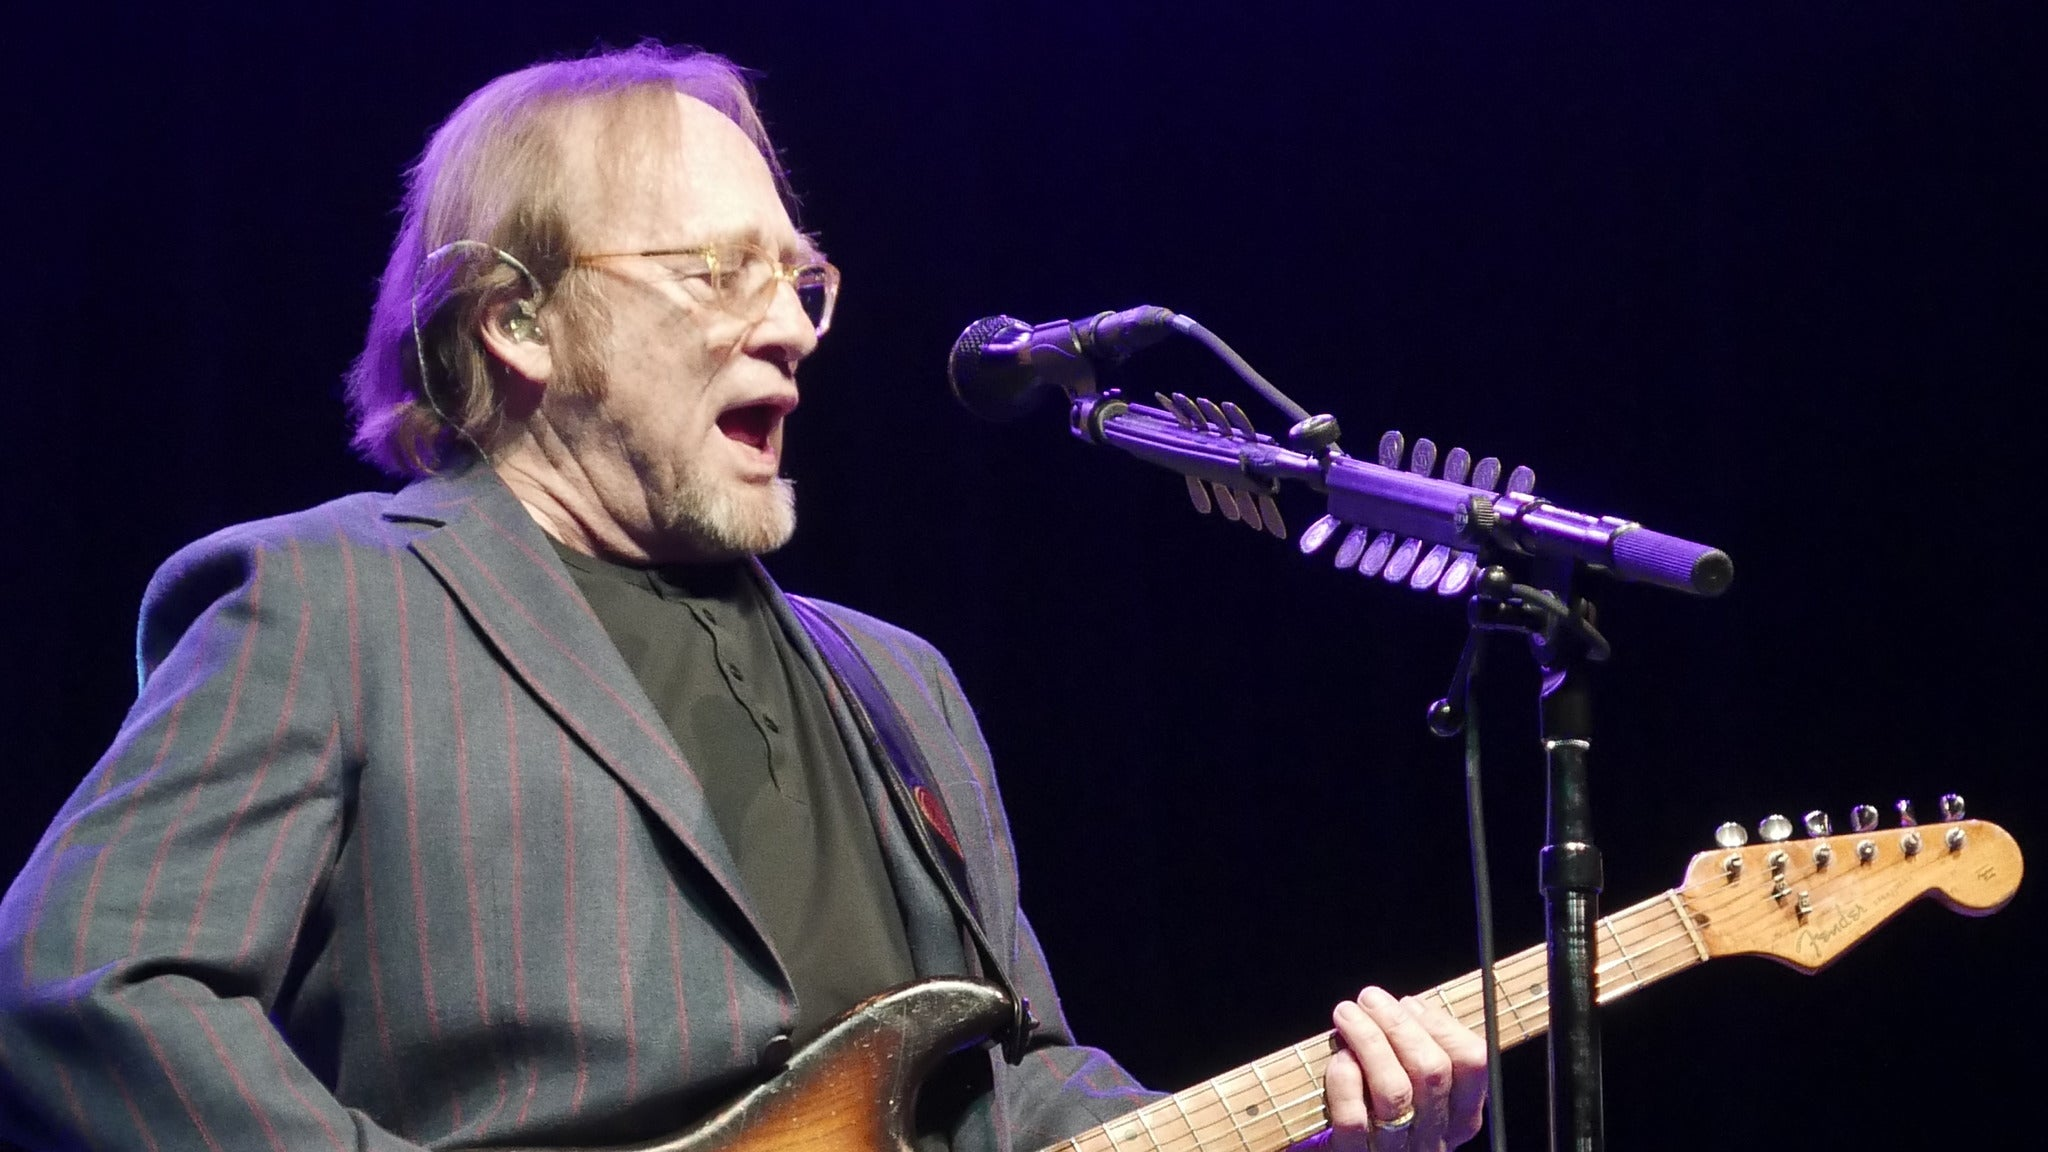 Stephen Stills w/ Judy Collins at Ridgefield Playhouse